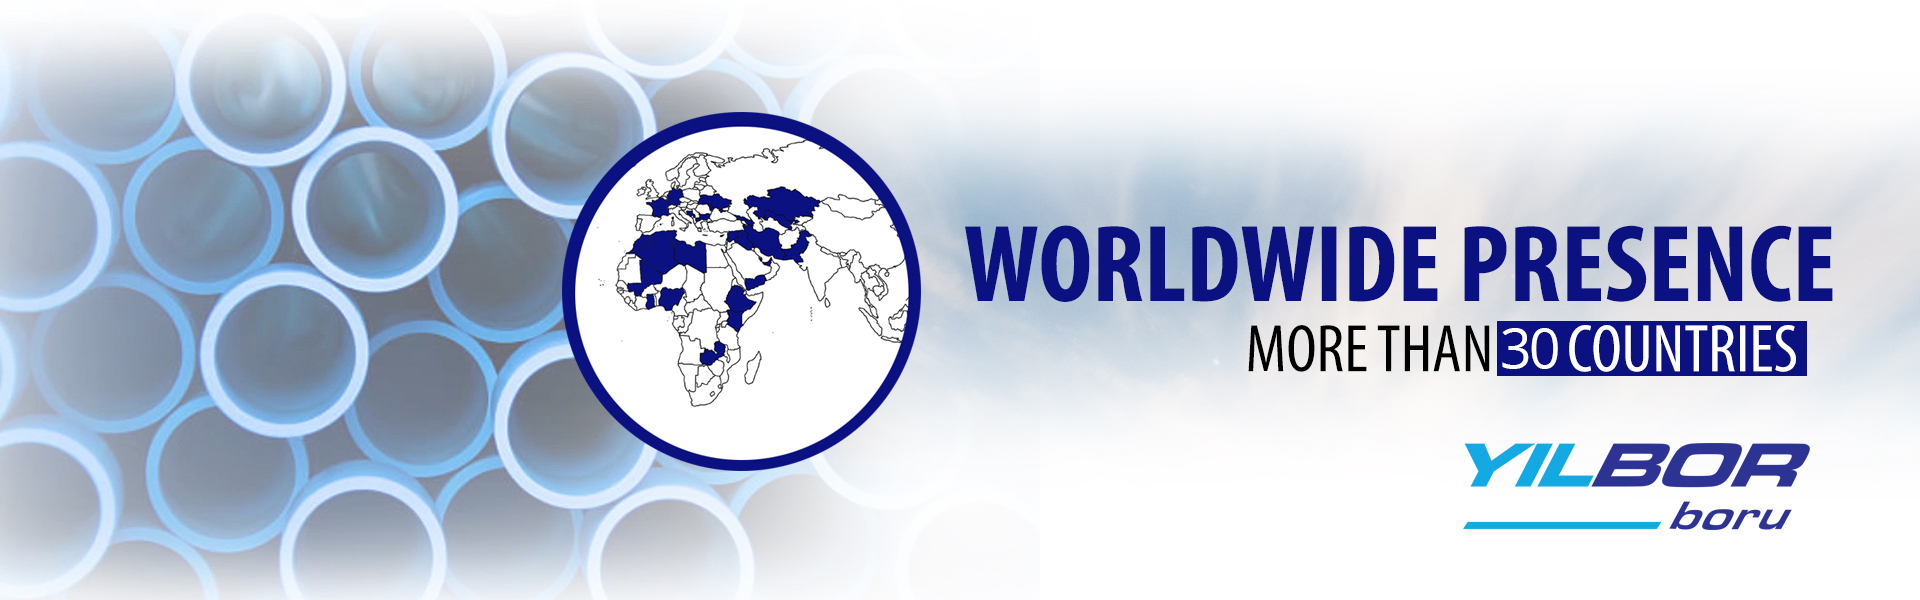 World Wide Presence More Than 30 Countries